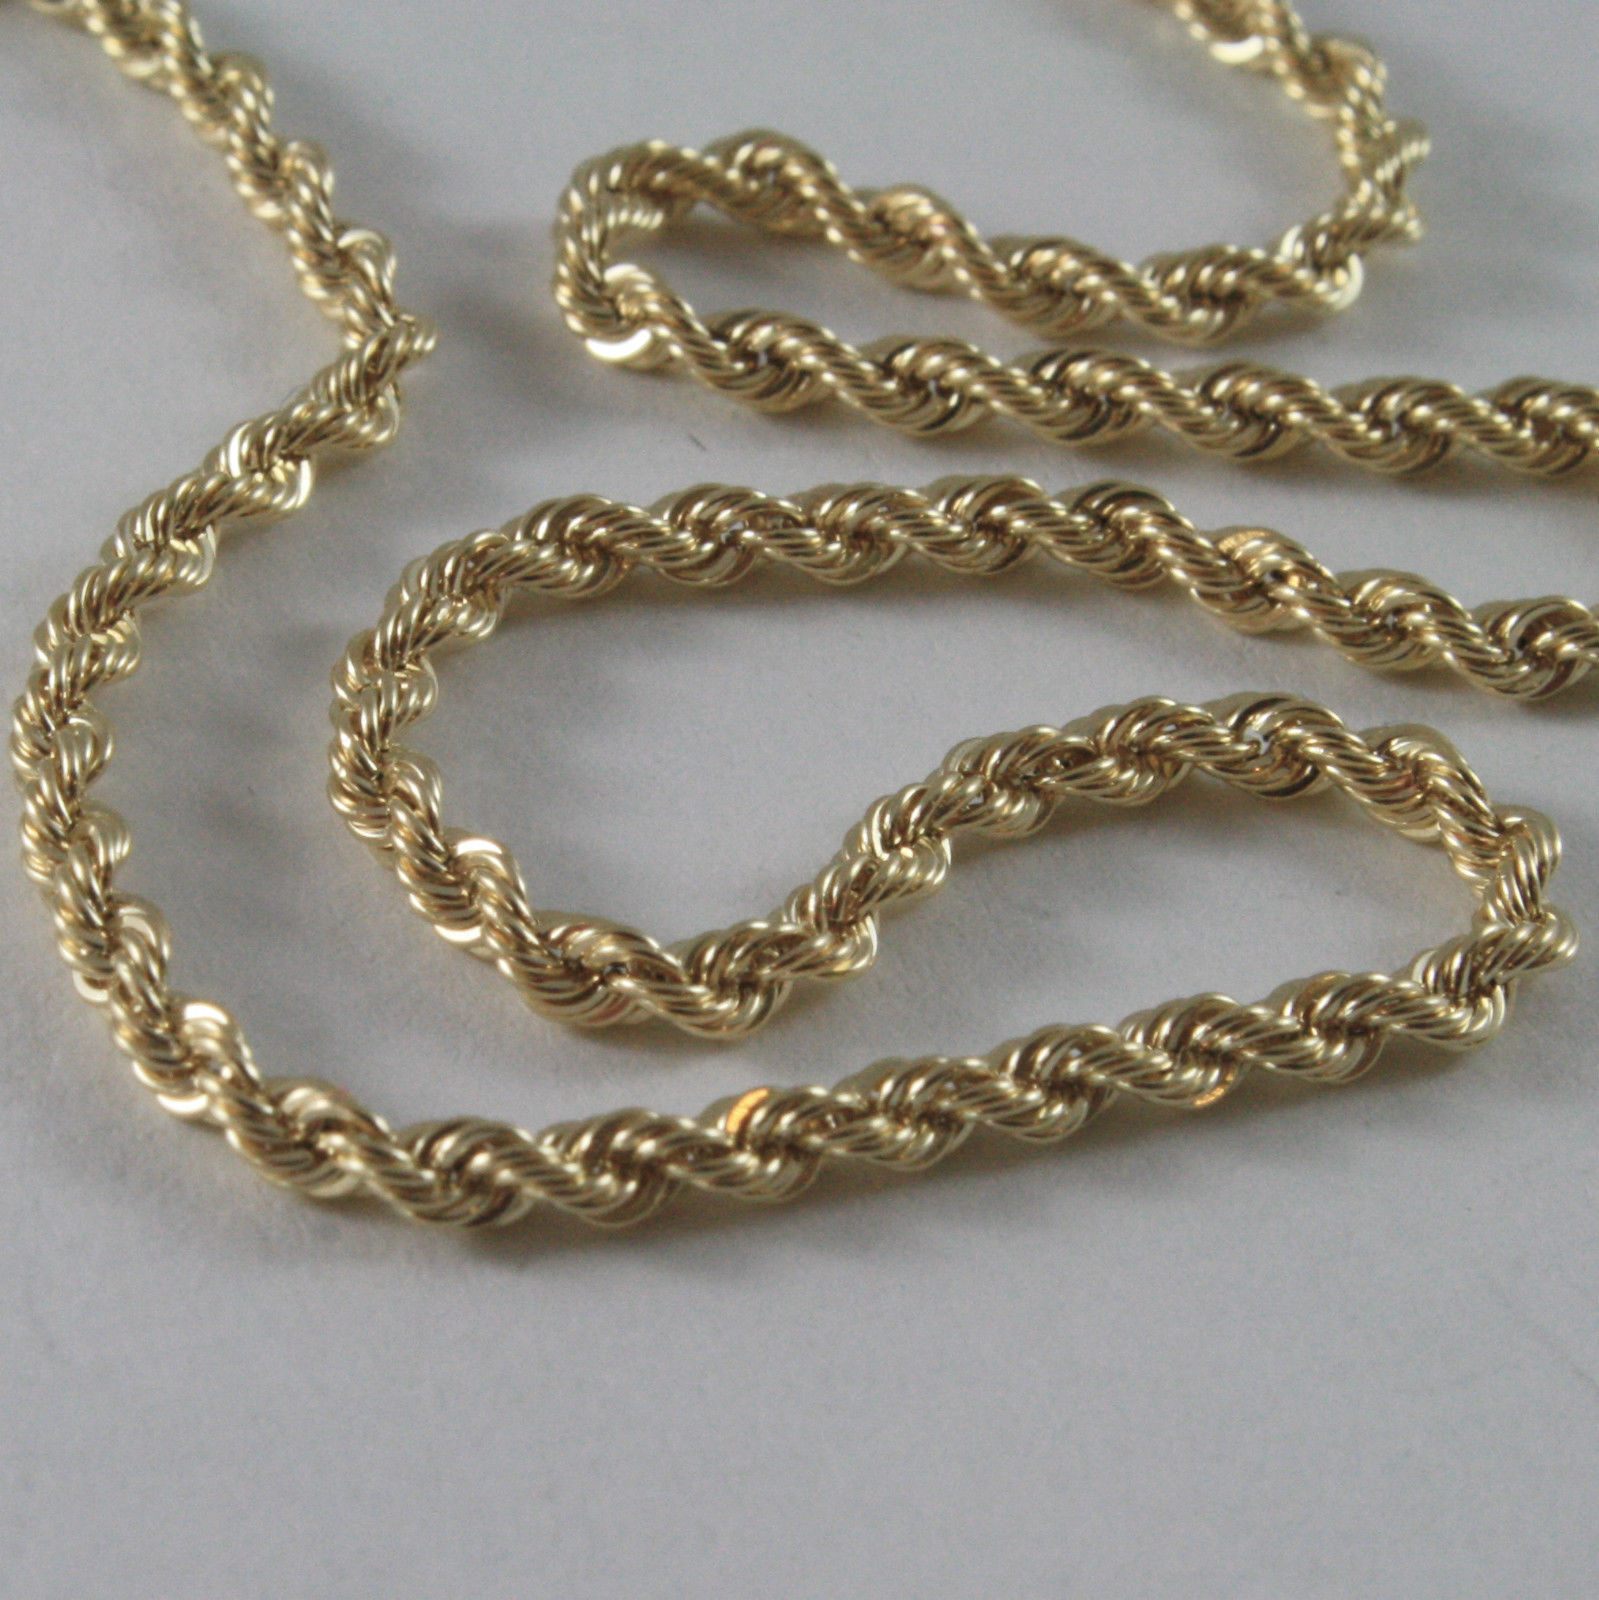 9K YELLOW GOLD ROPE CHAIN, BRAID ROPE CORD, NECKLACE MADE IN ITALY, 9KT